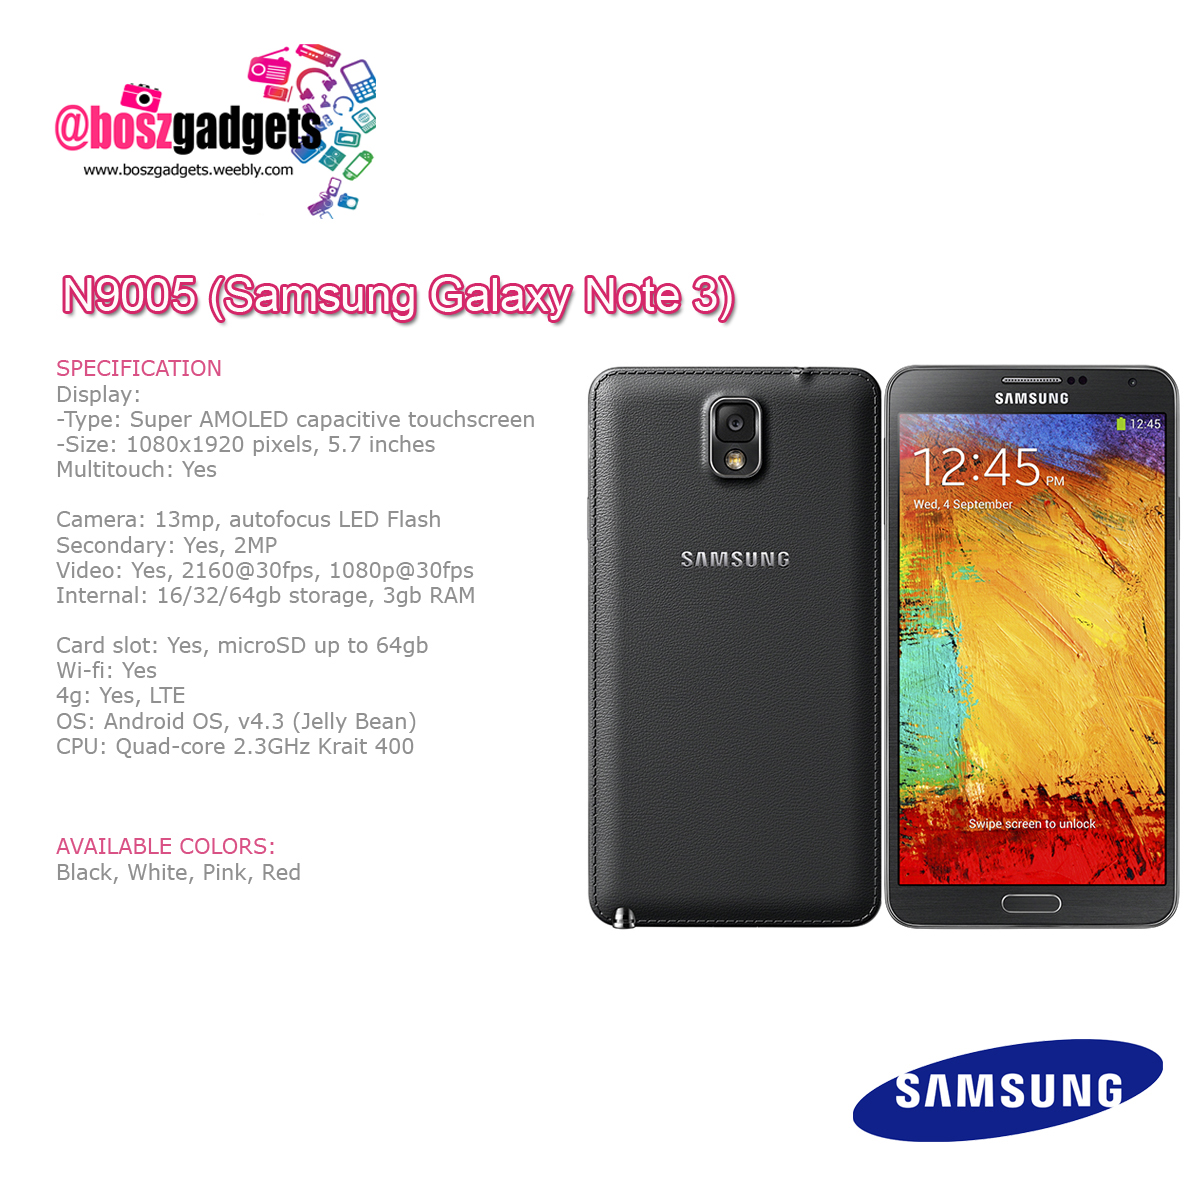 Samsung Products - @boszgadgets